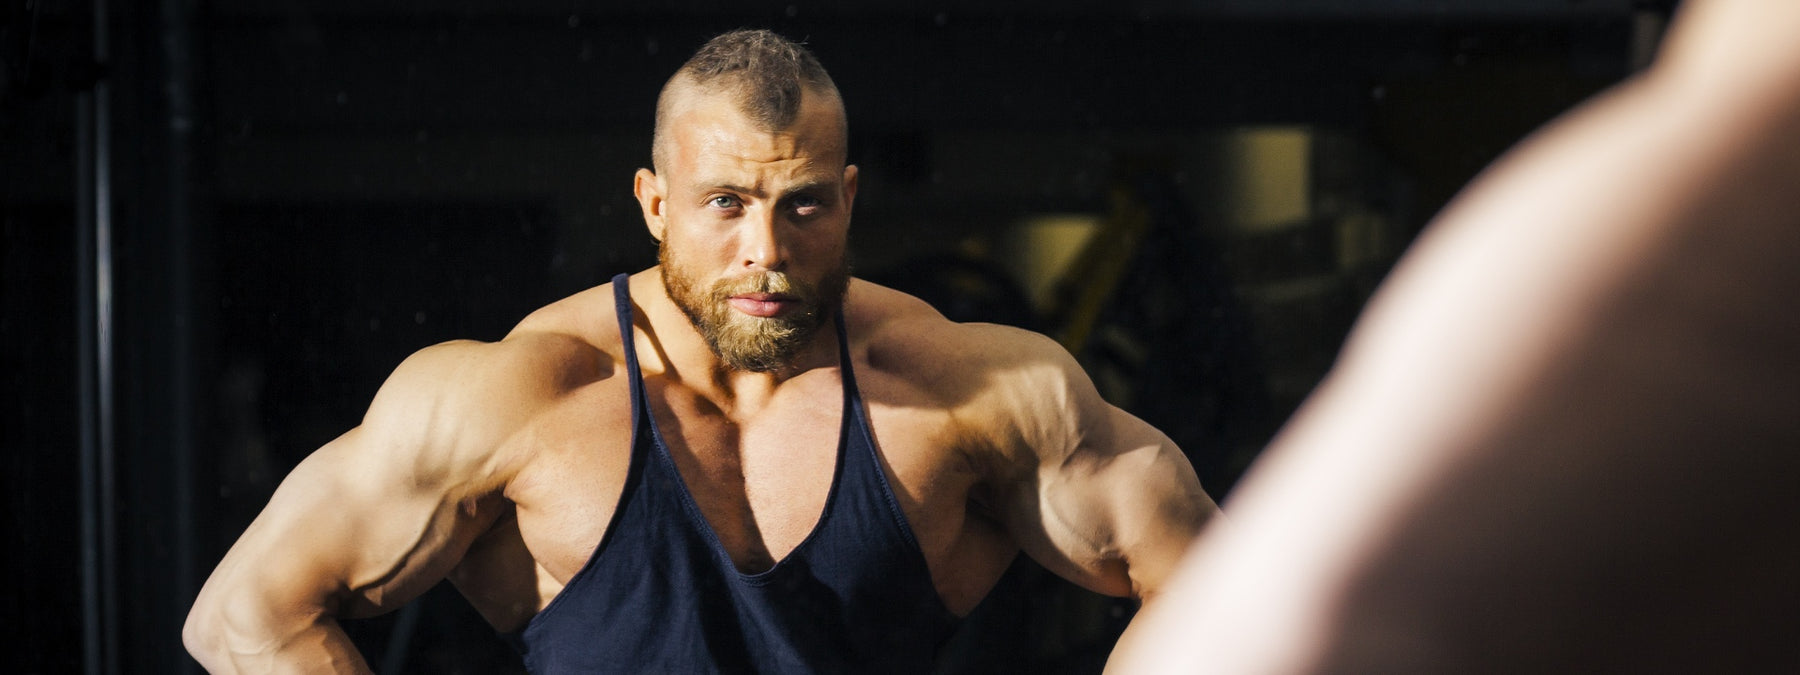 The Great Muscle Building Quiz of Gains! Can You Pass?